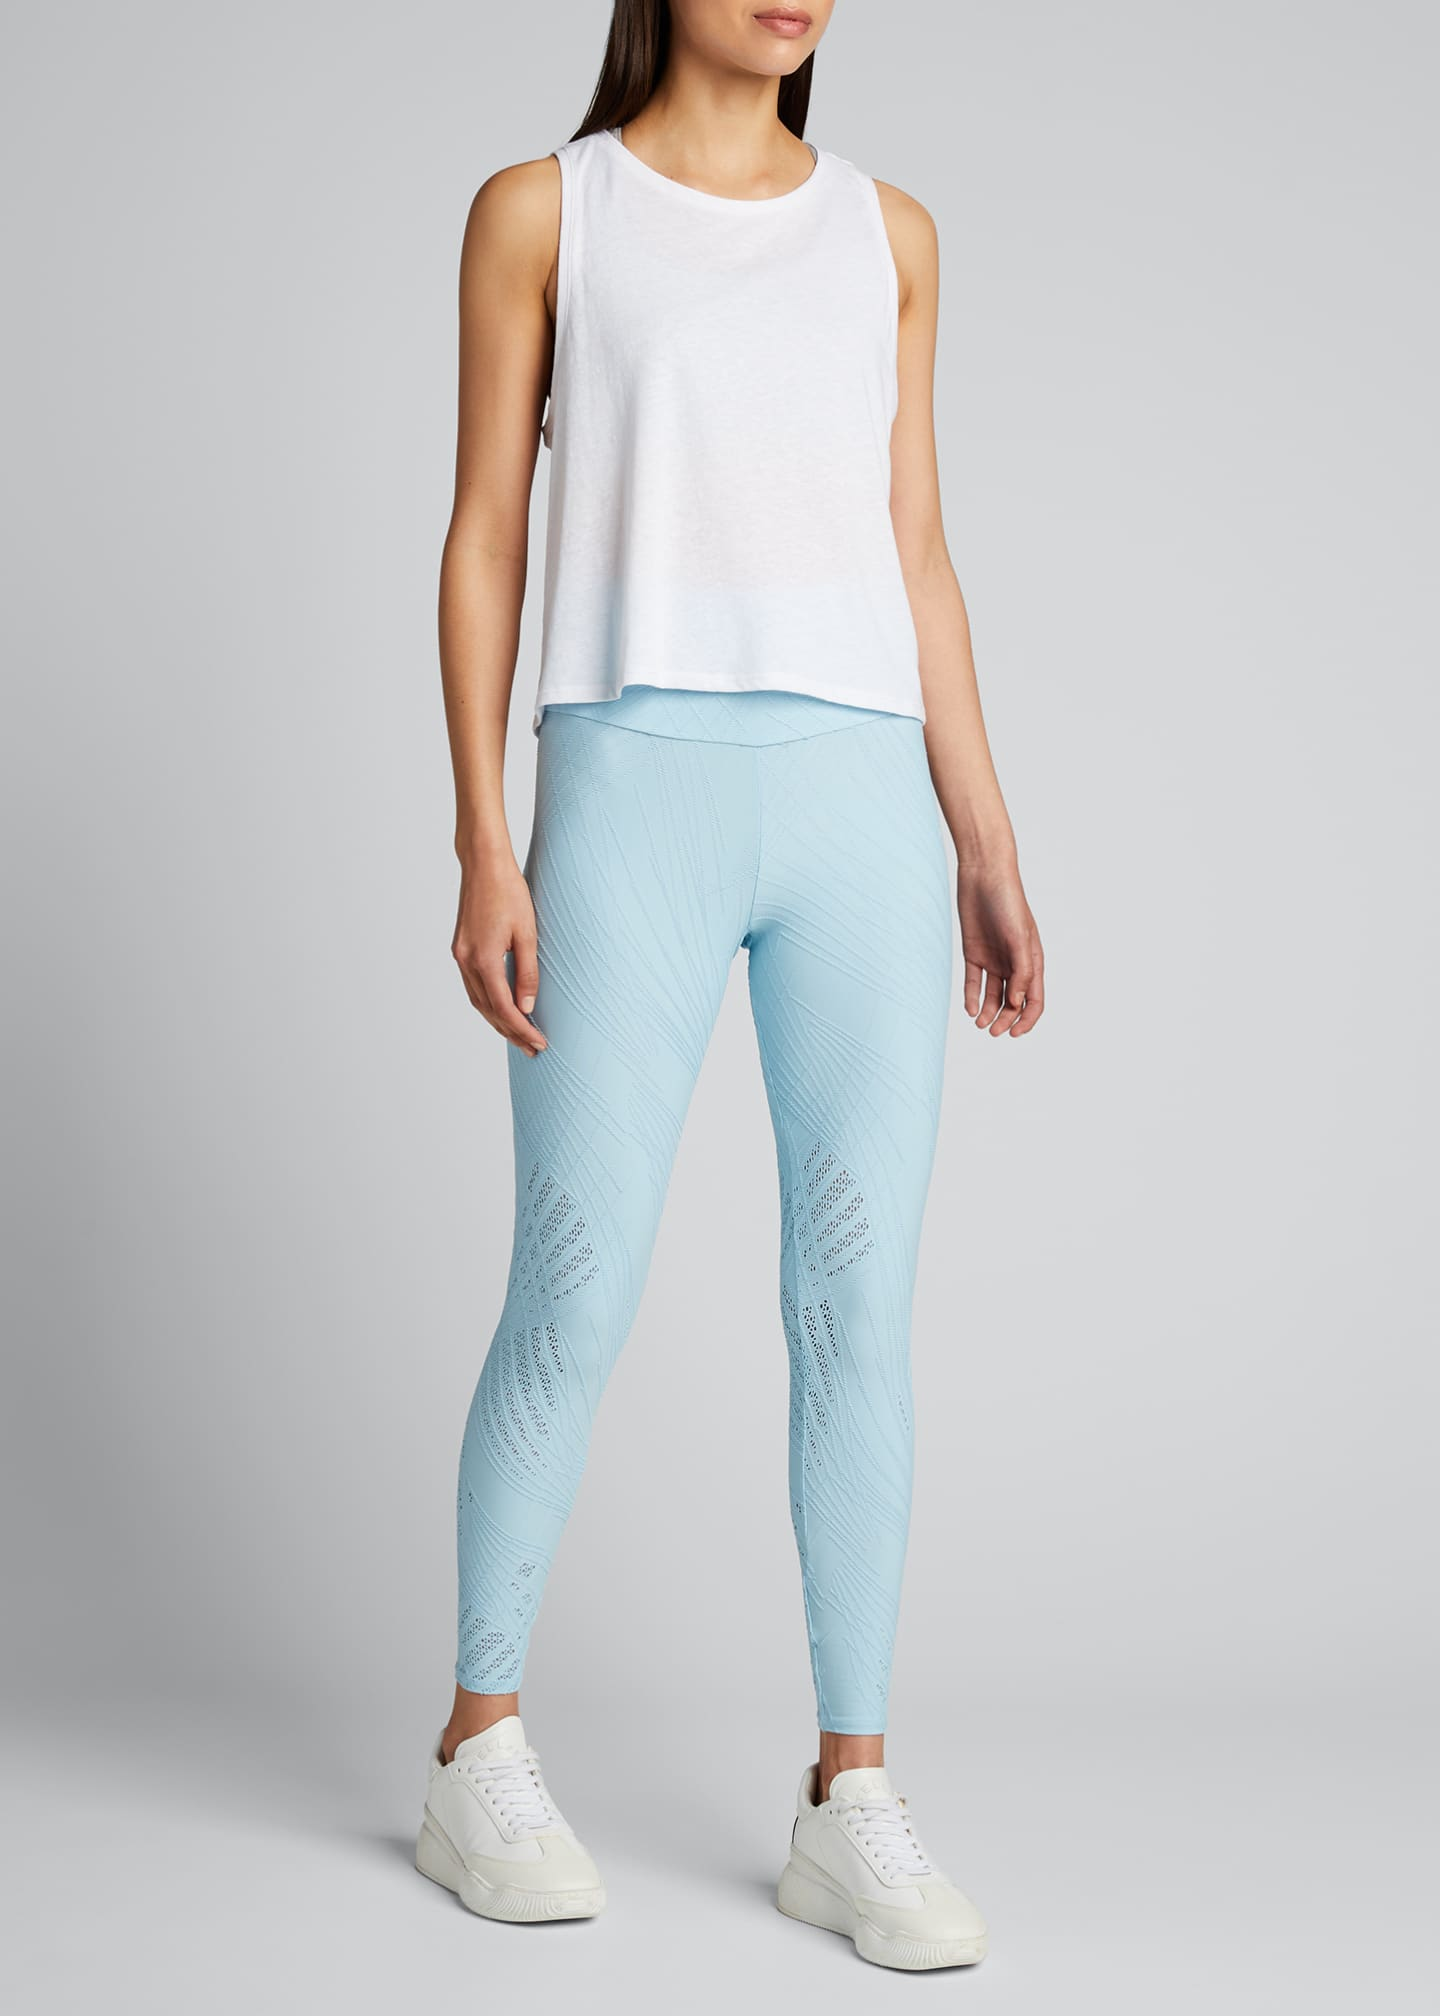 Selenite High-Rise Midi Leggings